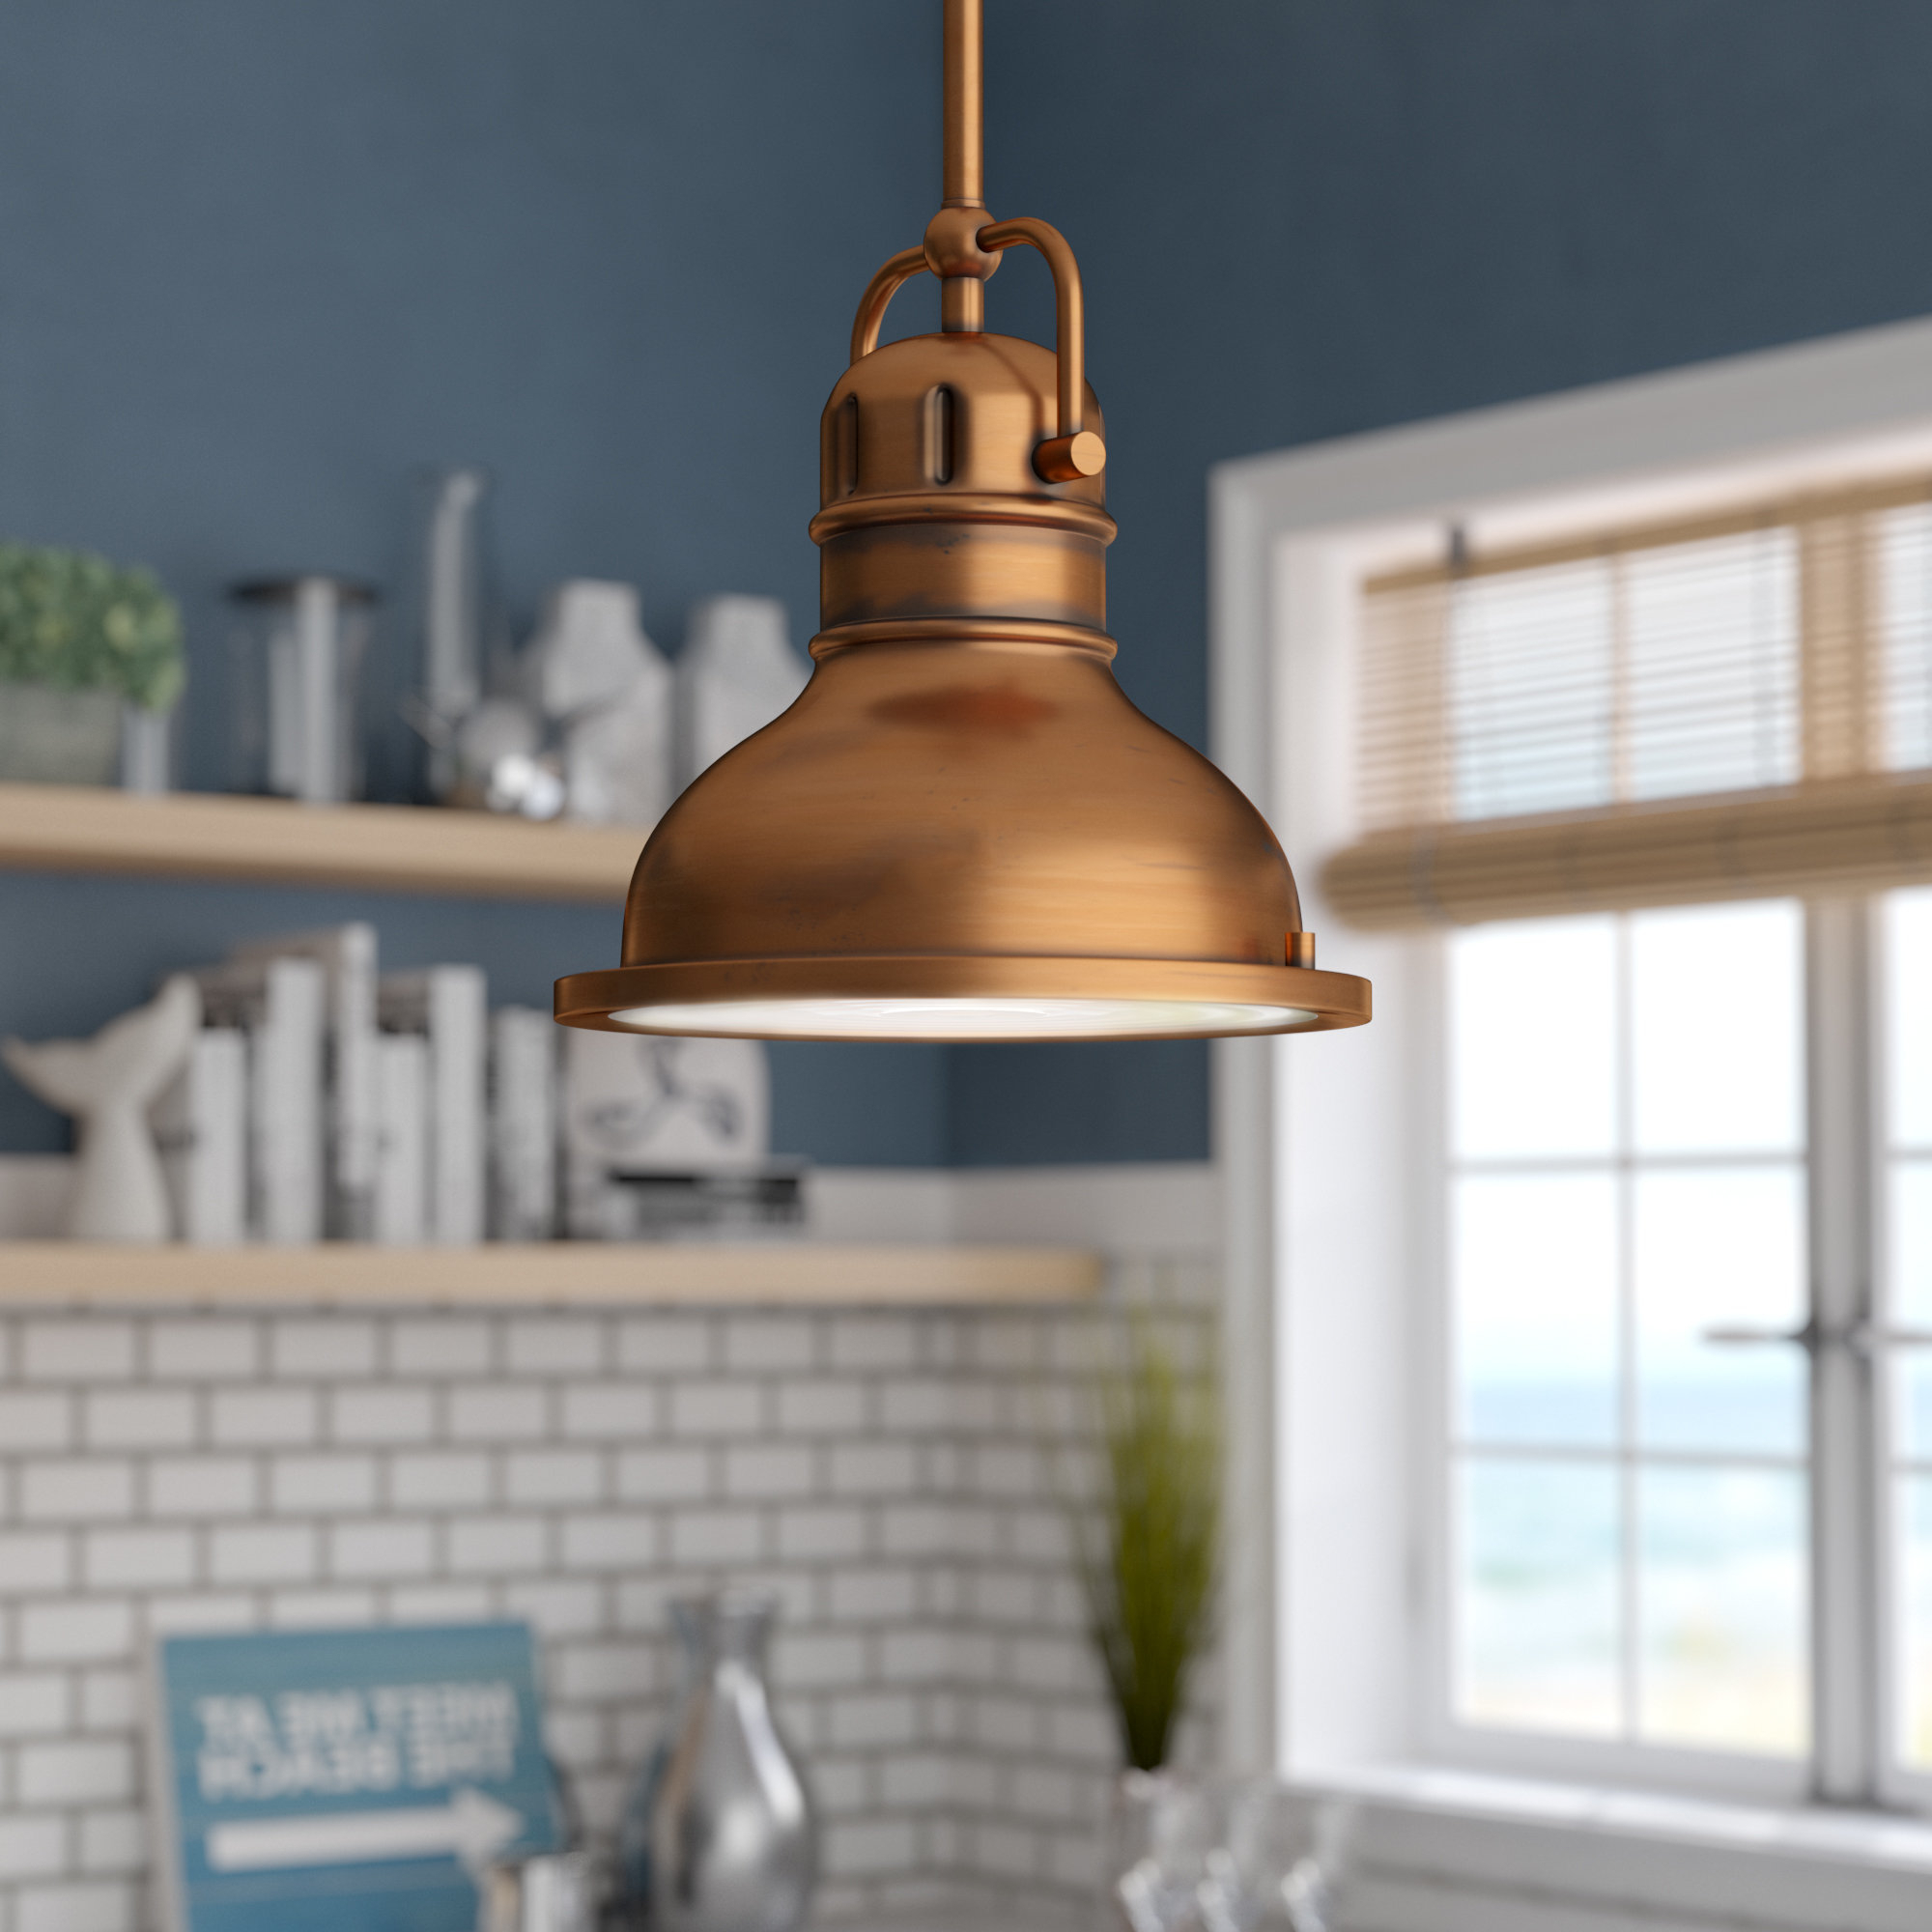 Merrick 1 Light Dome Pendant With Widely Used Mueller 1 Light Single Dome Pendants (View 13 of 25)